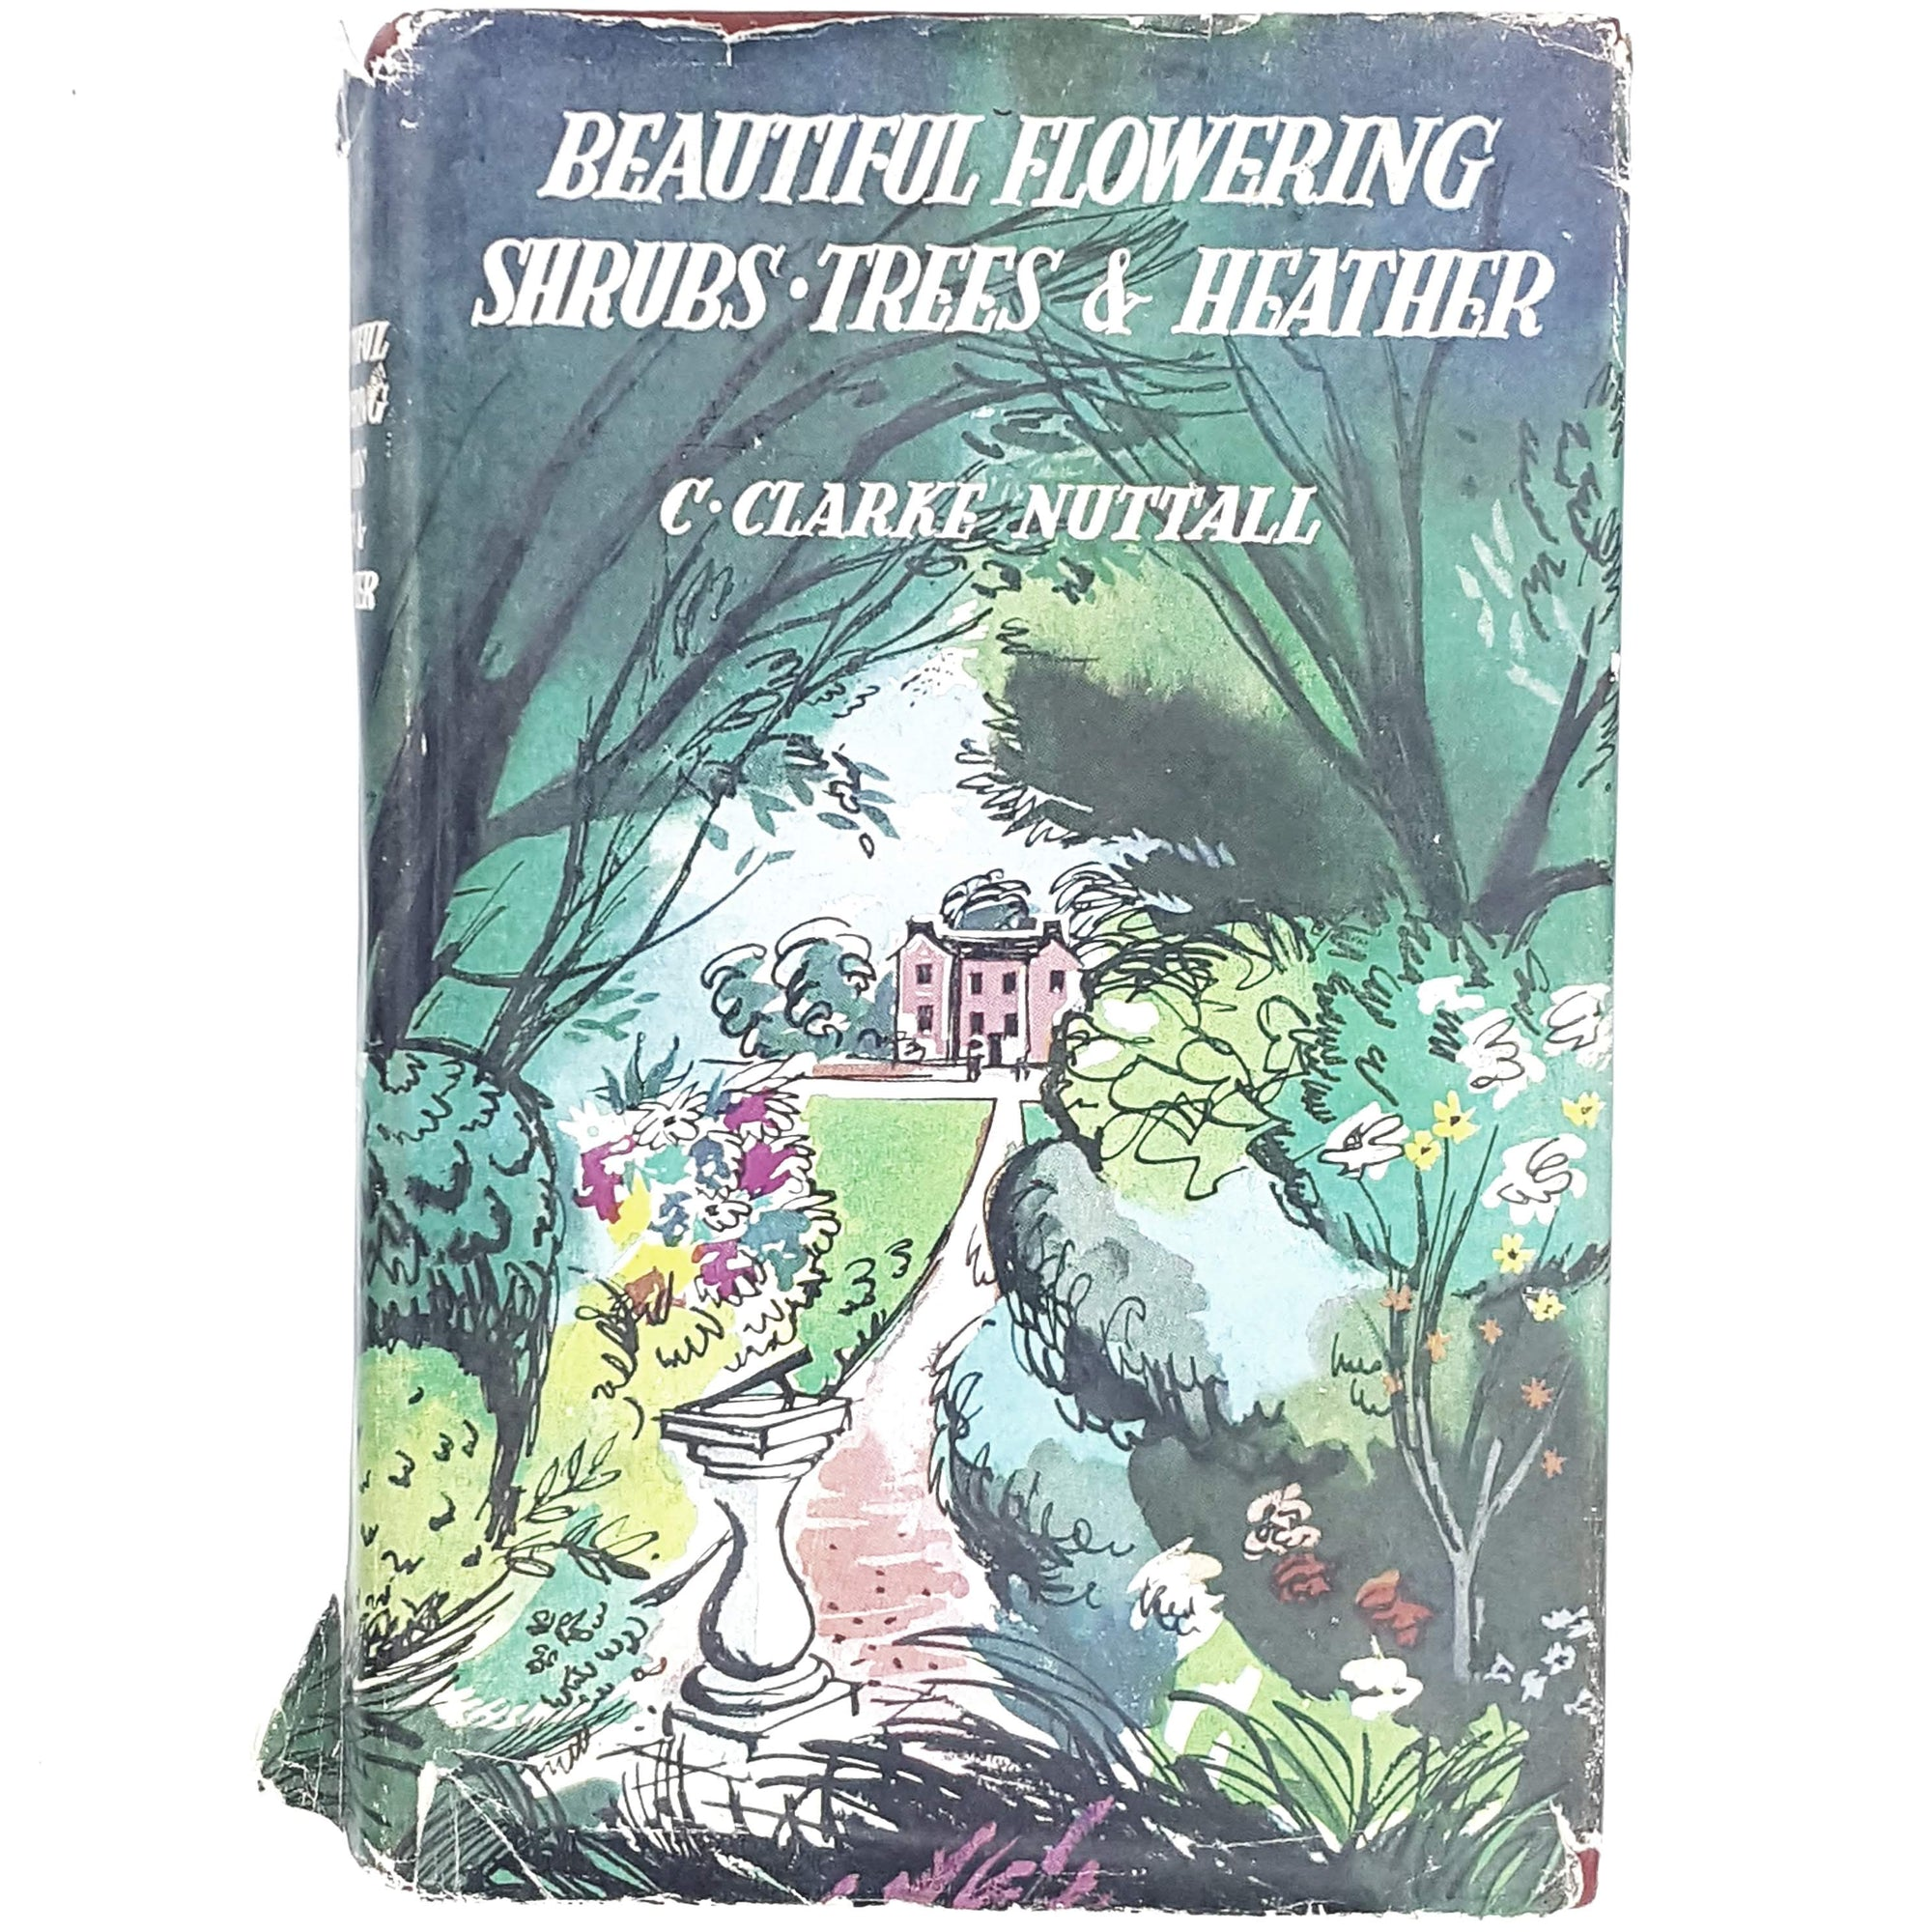 flowers-green-shrubs-vintage-book-country-house-library